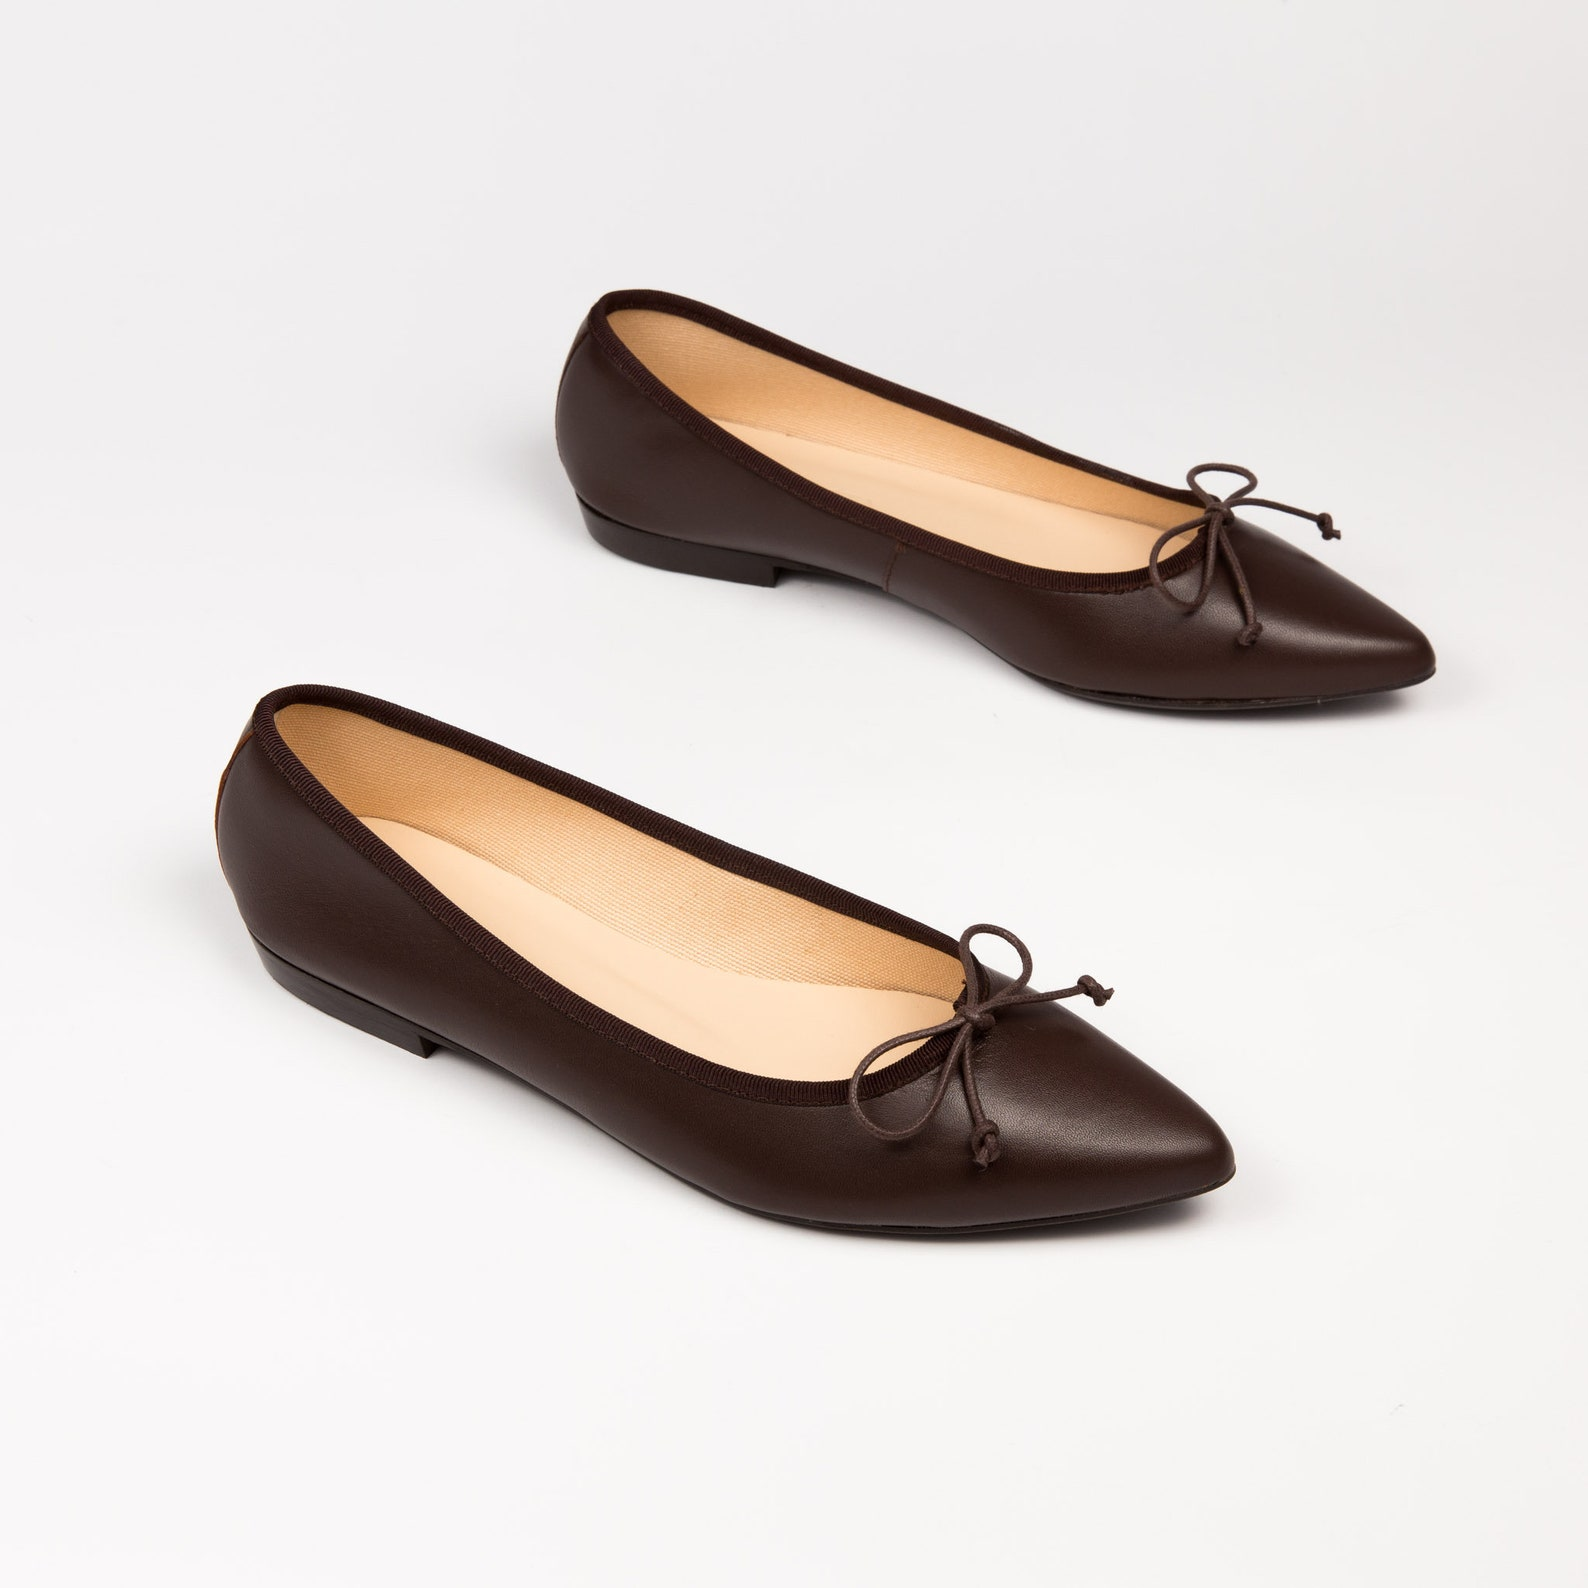 brown ballet flats | brown leather ballerina shoes | elegant flat shoes for women | pointed toe flats | global free shipping